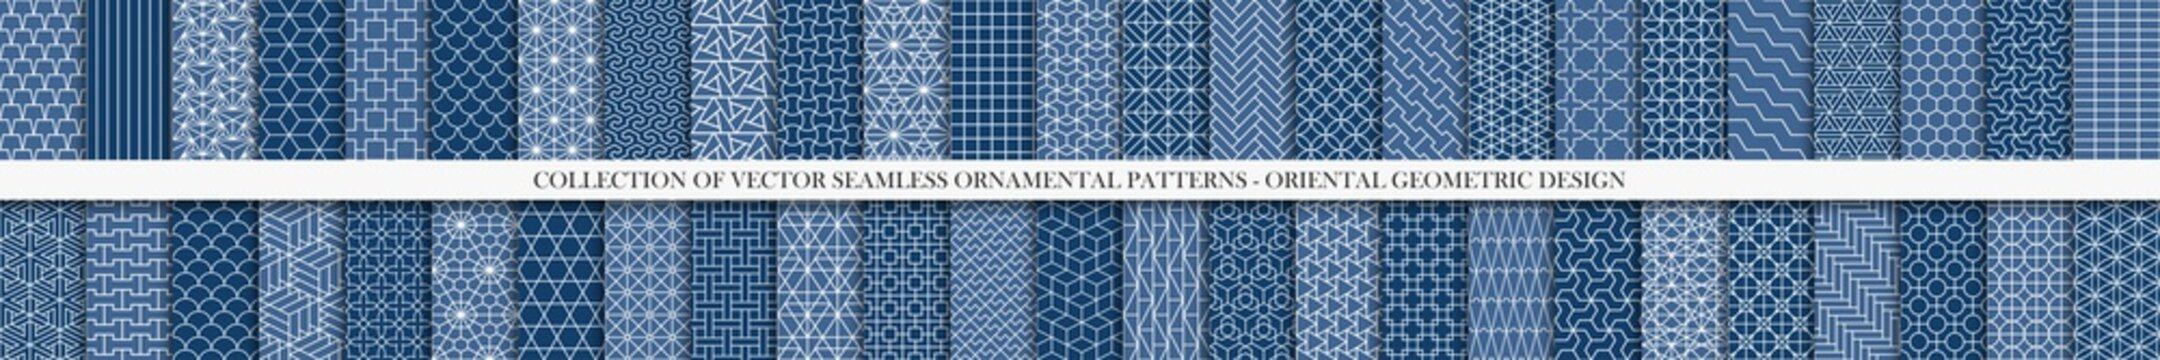 Collection of seamless geometric ornamental vector patterns. Tile oriental backgrounds. Trendy blue design